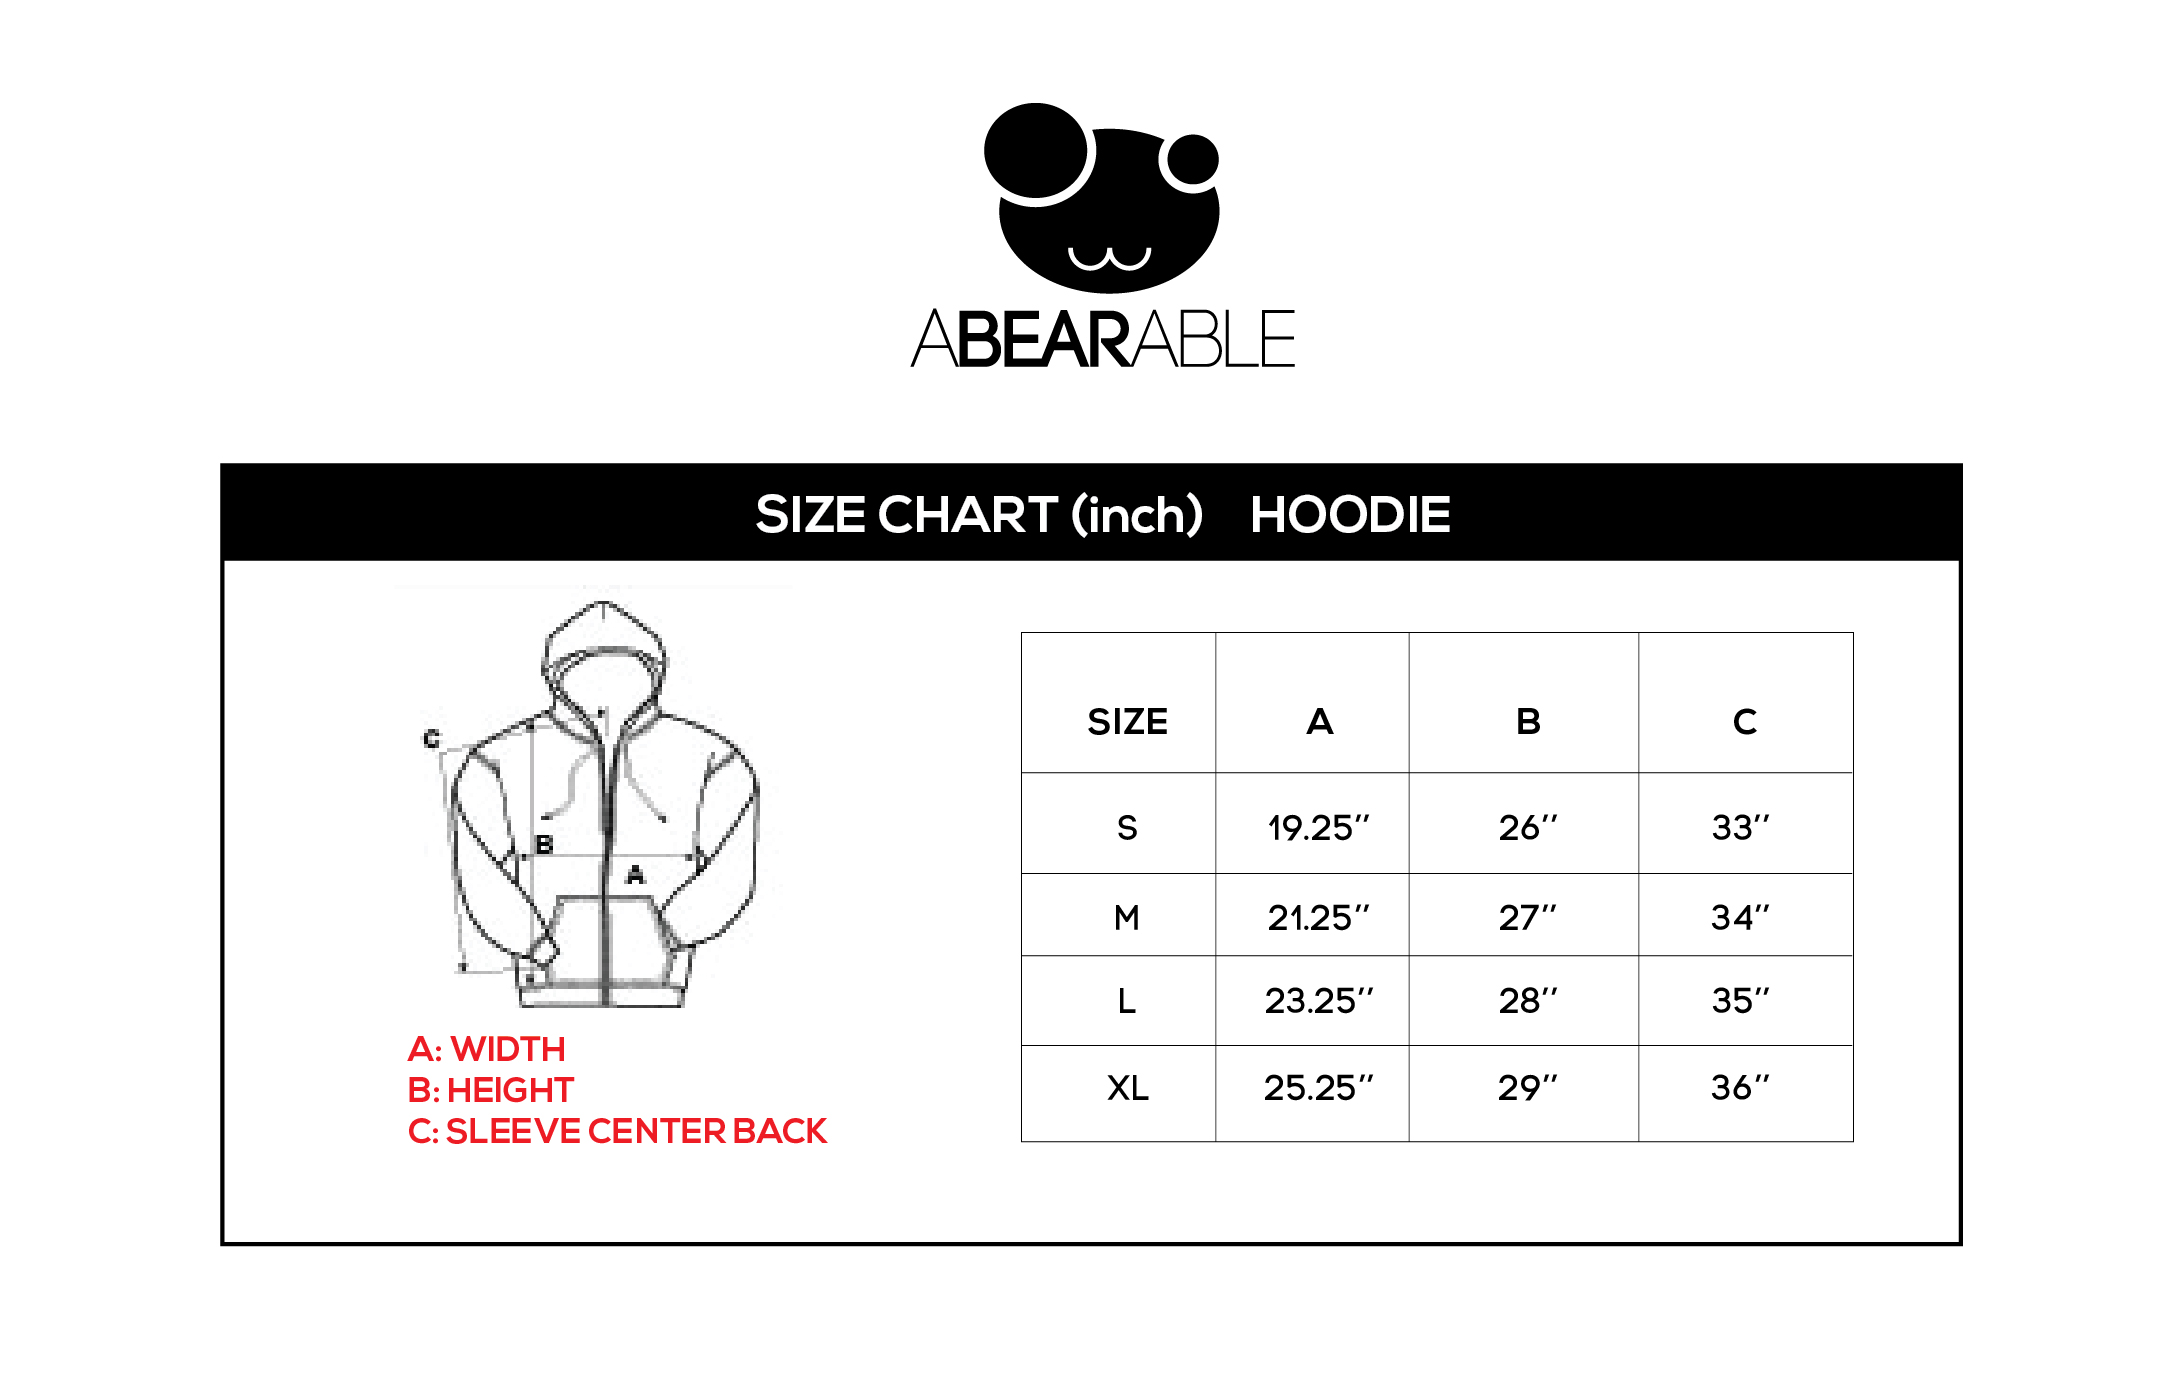 abearable,bear,bearlover,cute,minimal,jacket,winter,เสื้อคลุม,เสื้อกันหนาว,design,products,giftideas,grey,gift